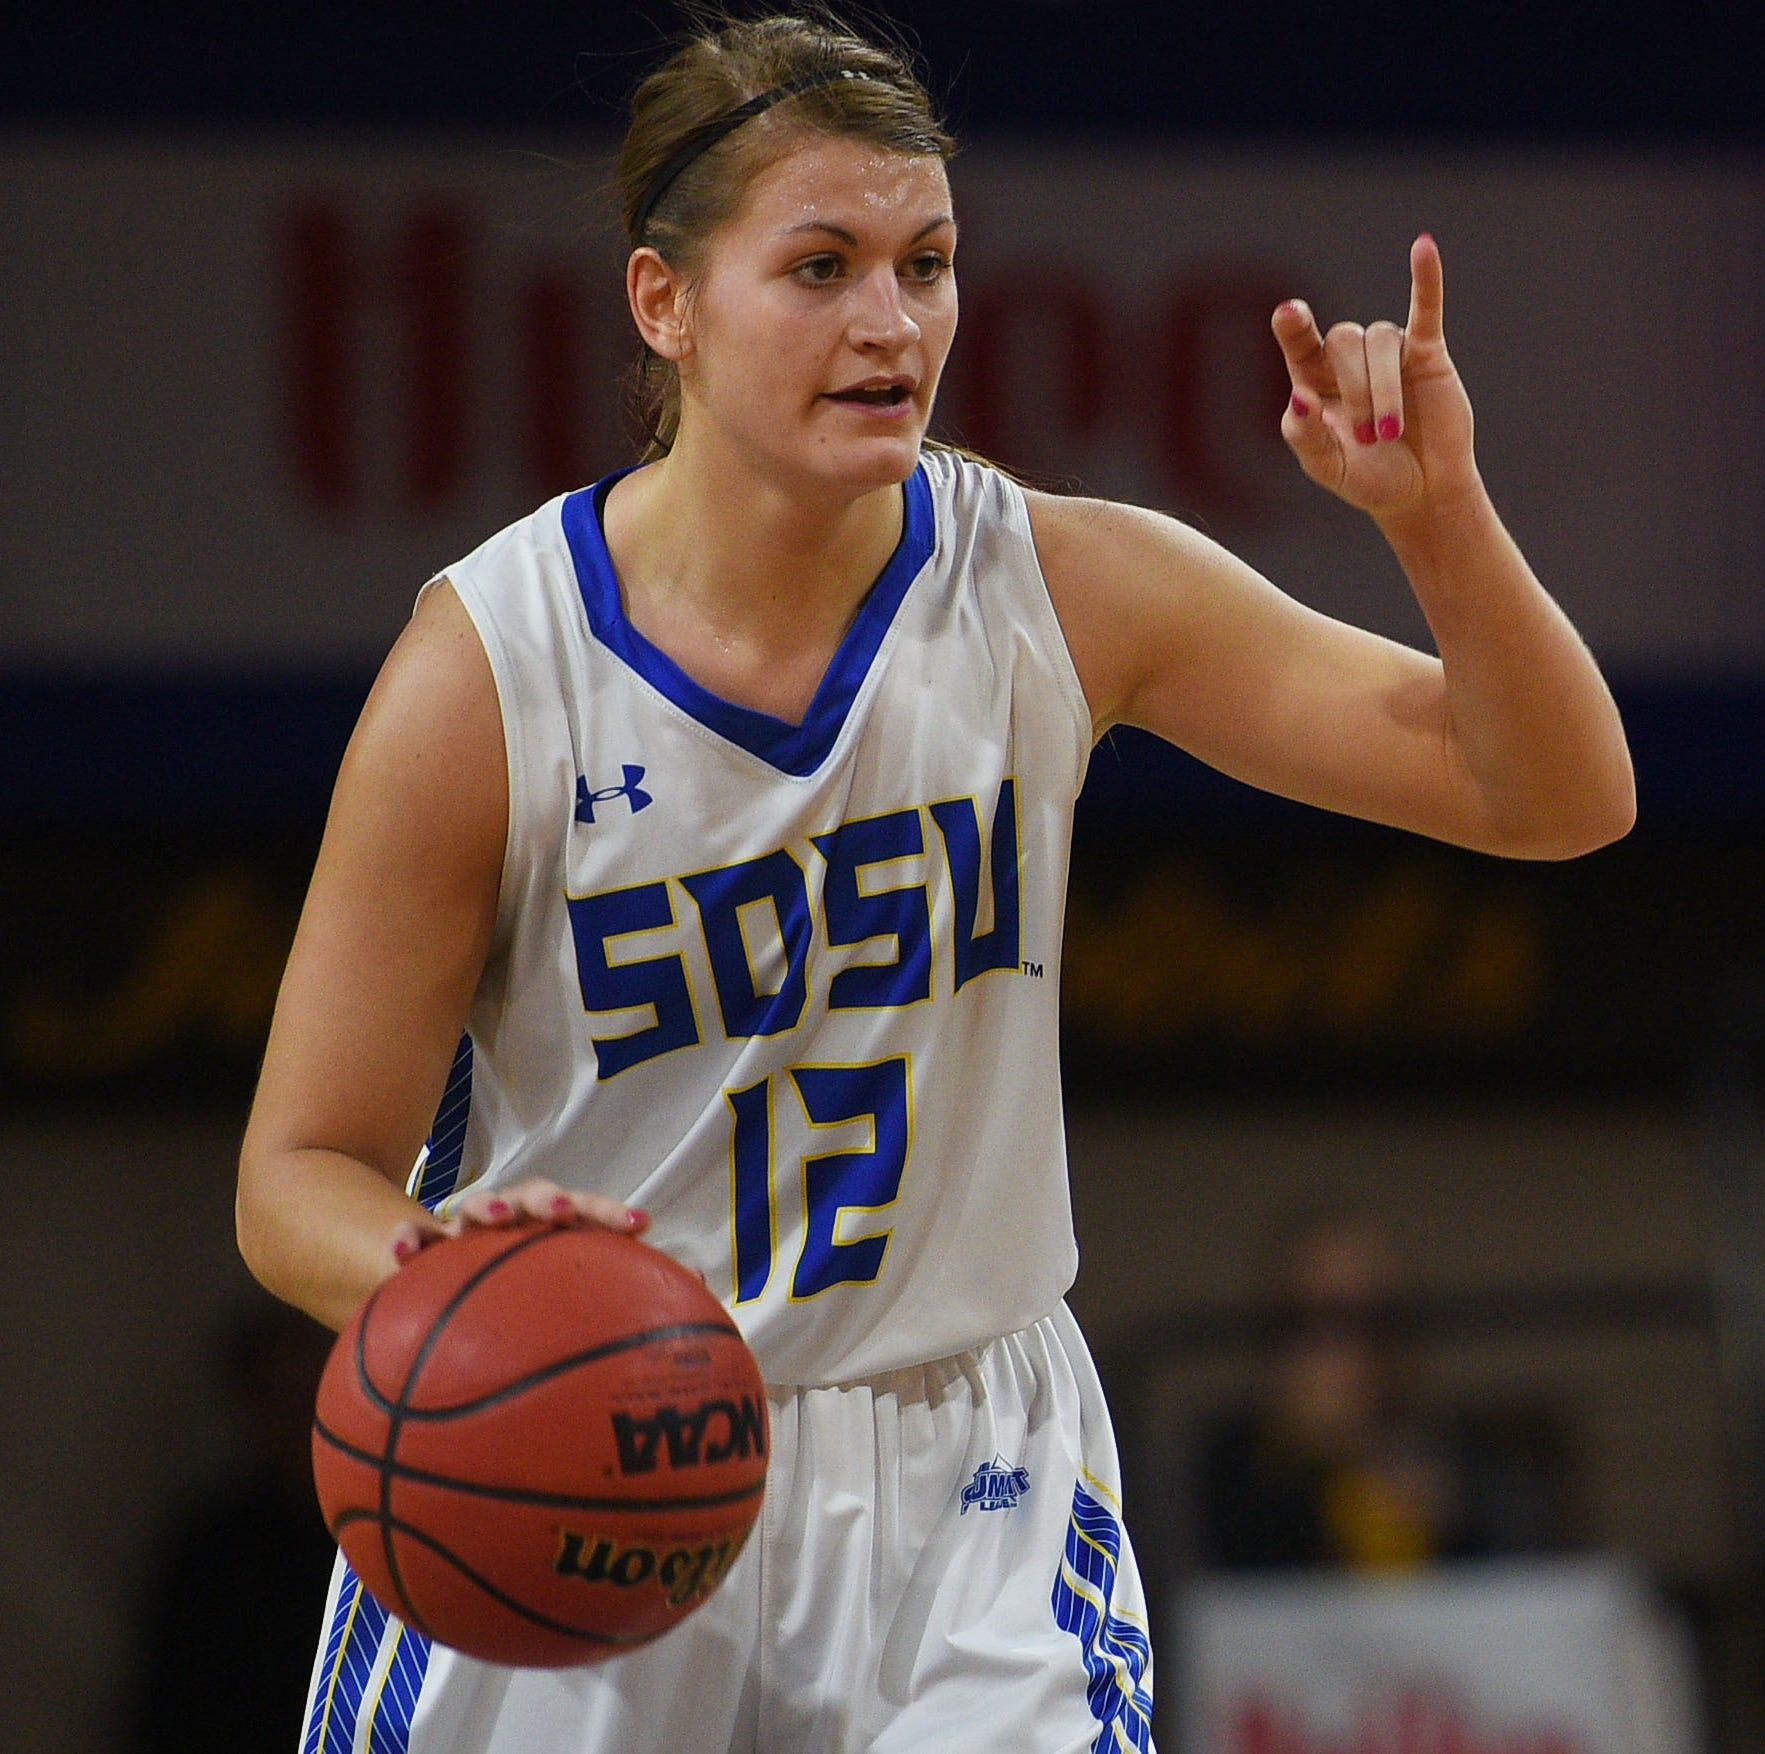 Macy Miller sets all-time scoring record at South Dakota State